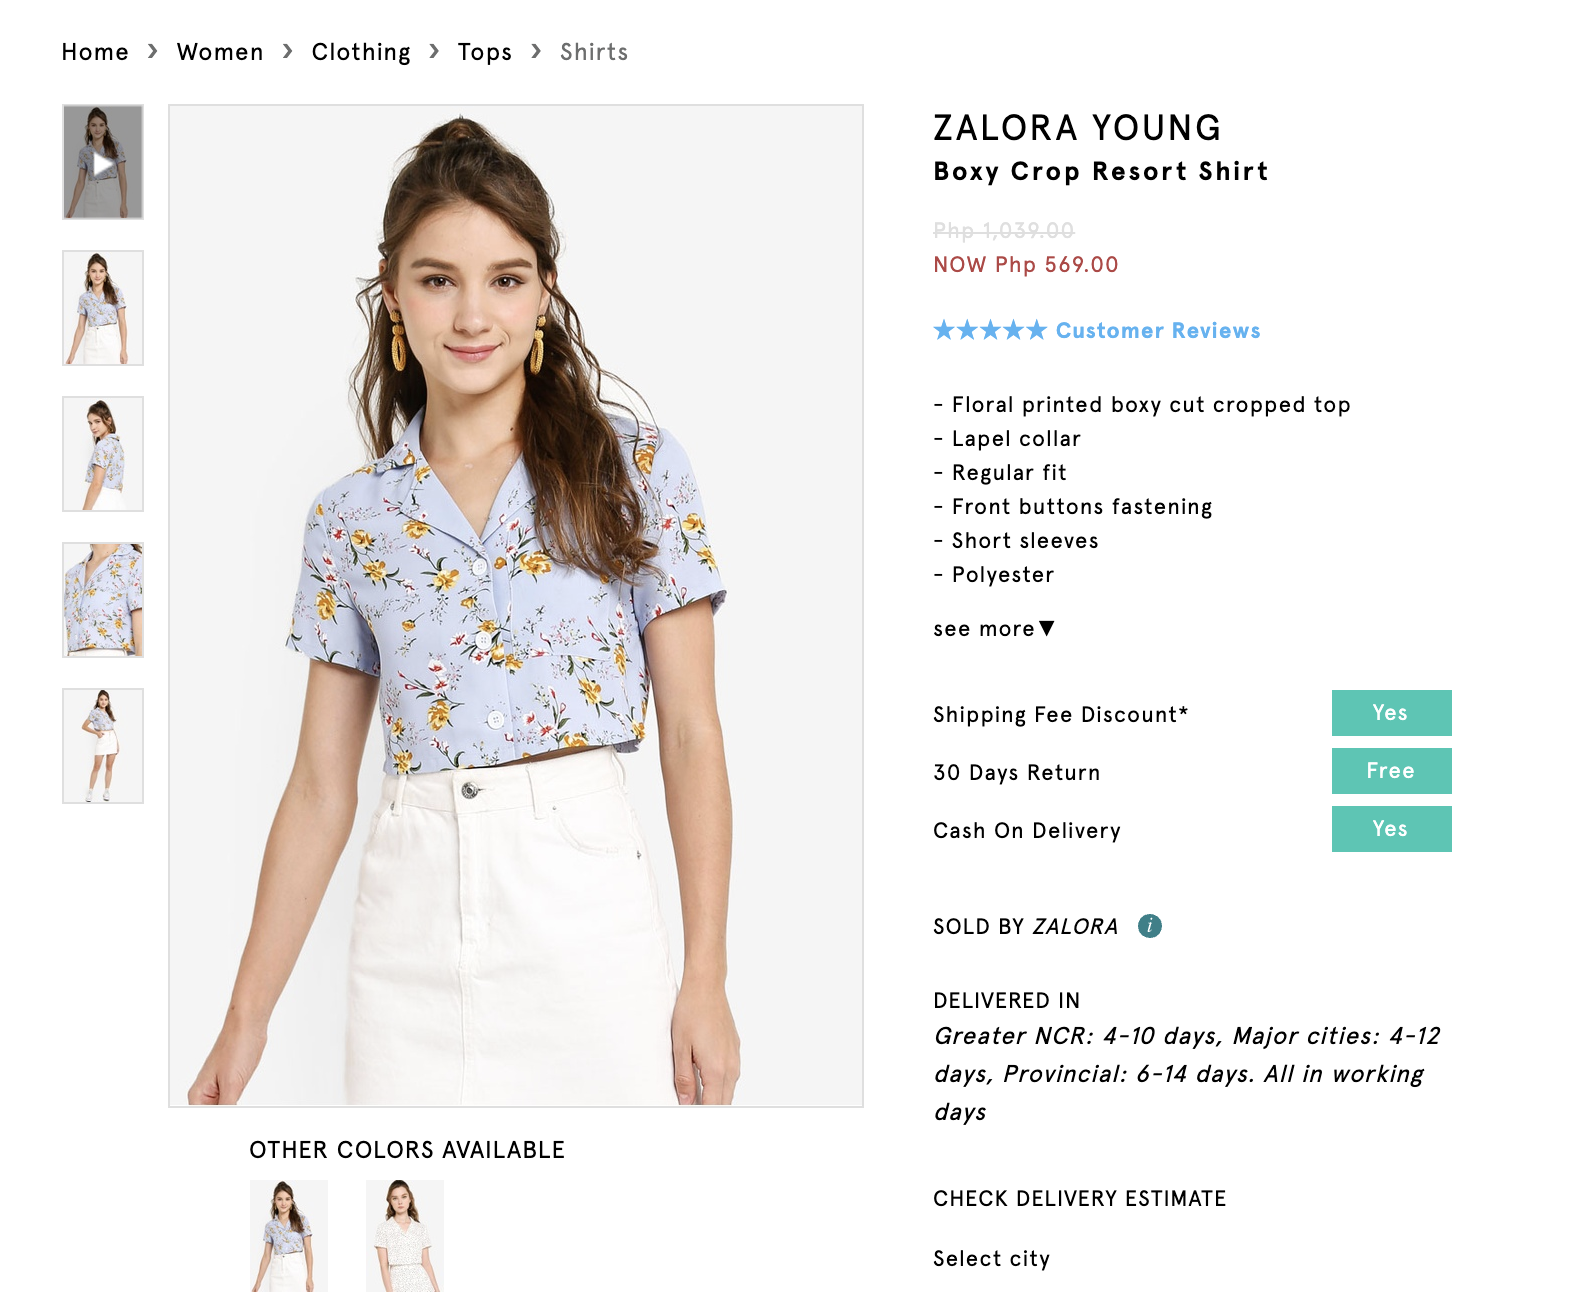 Screenshot of Zalora Young Boxy Crop Resort Shirt